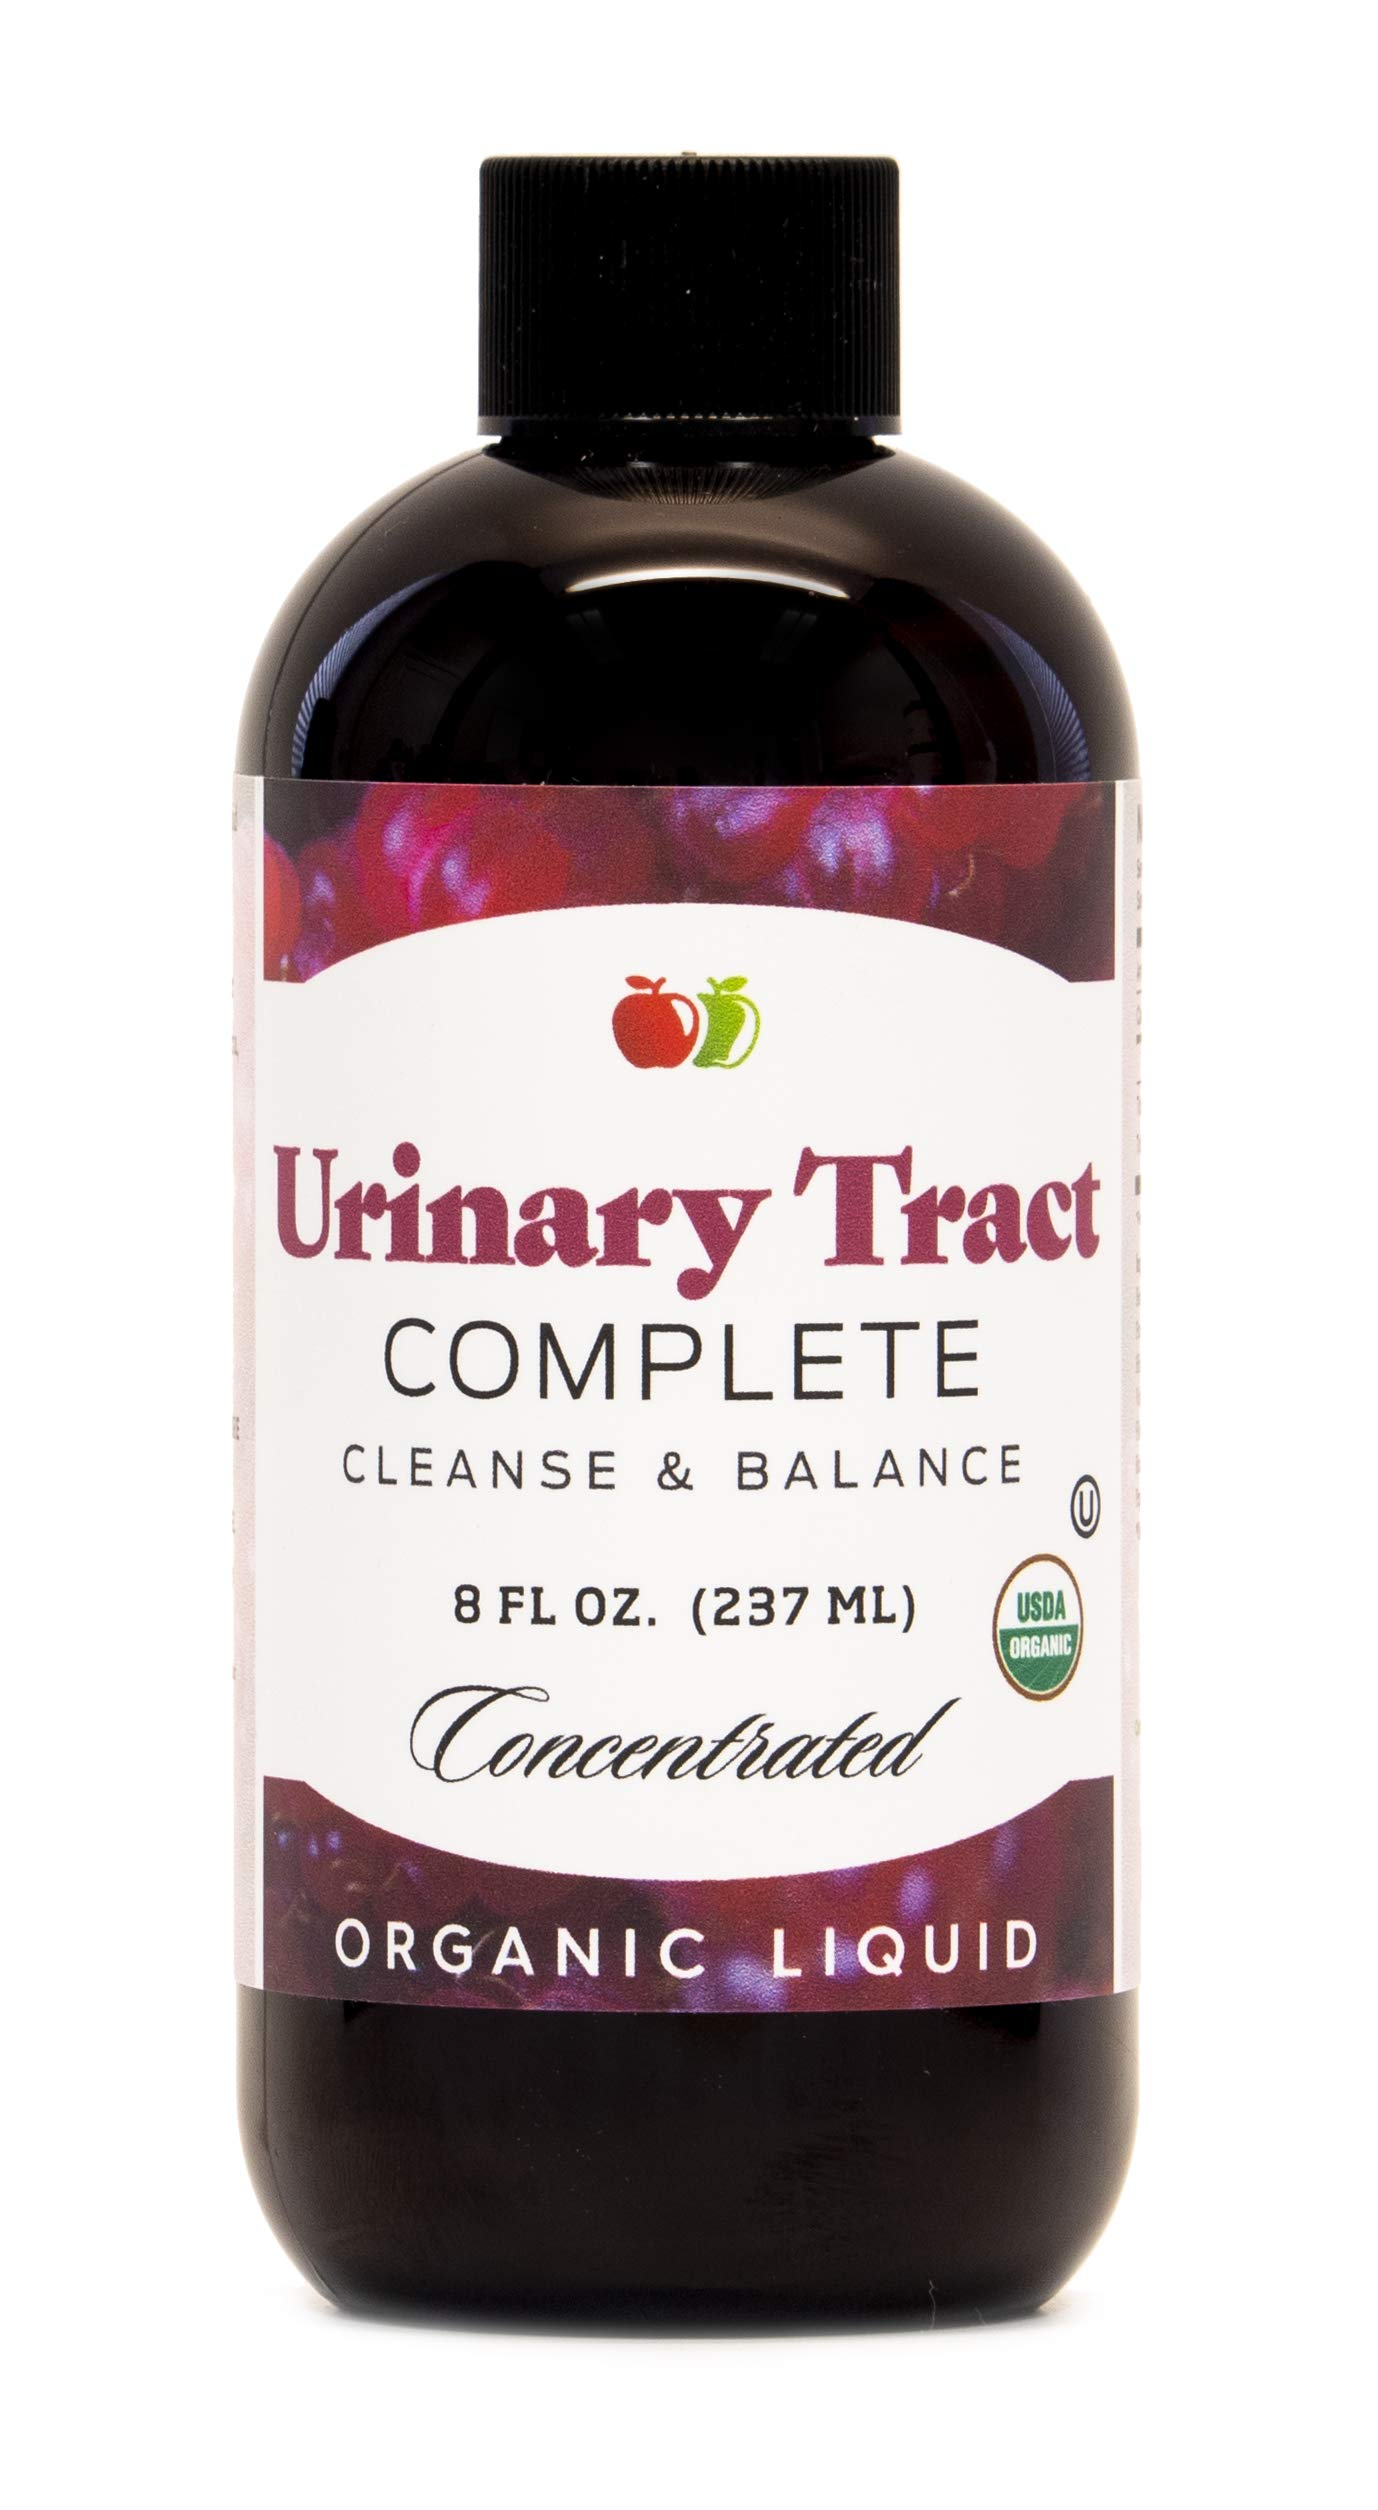 Urinary Tract Complete 8oz - Organic UTI Cleanse, Defense, Health, Infection Treatment by Complete Natural Products